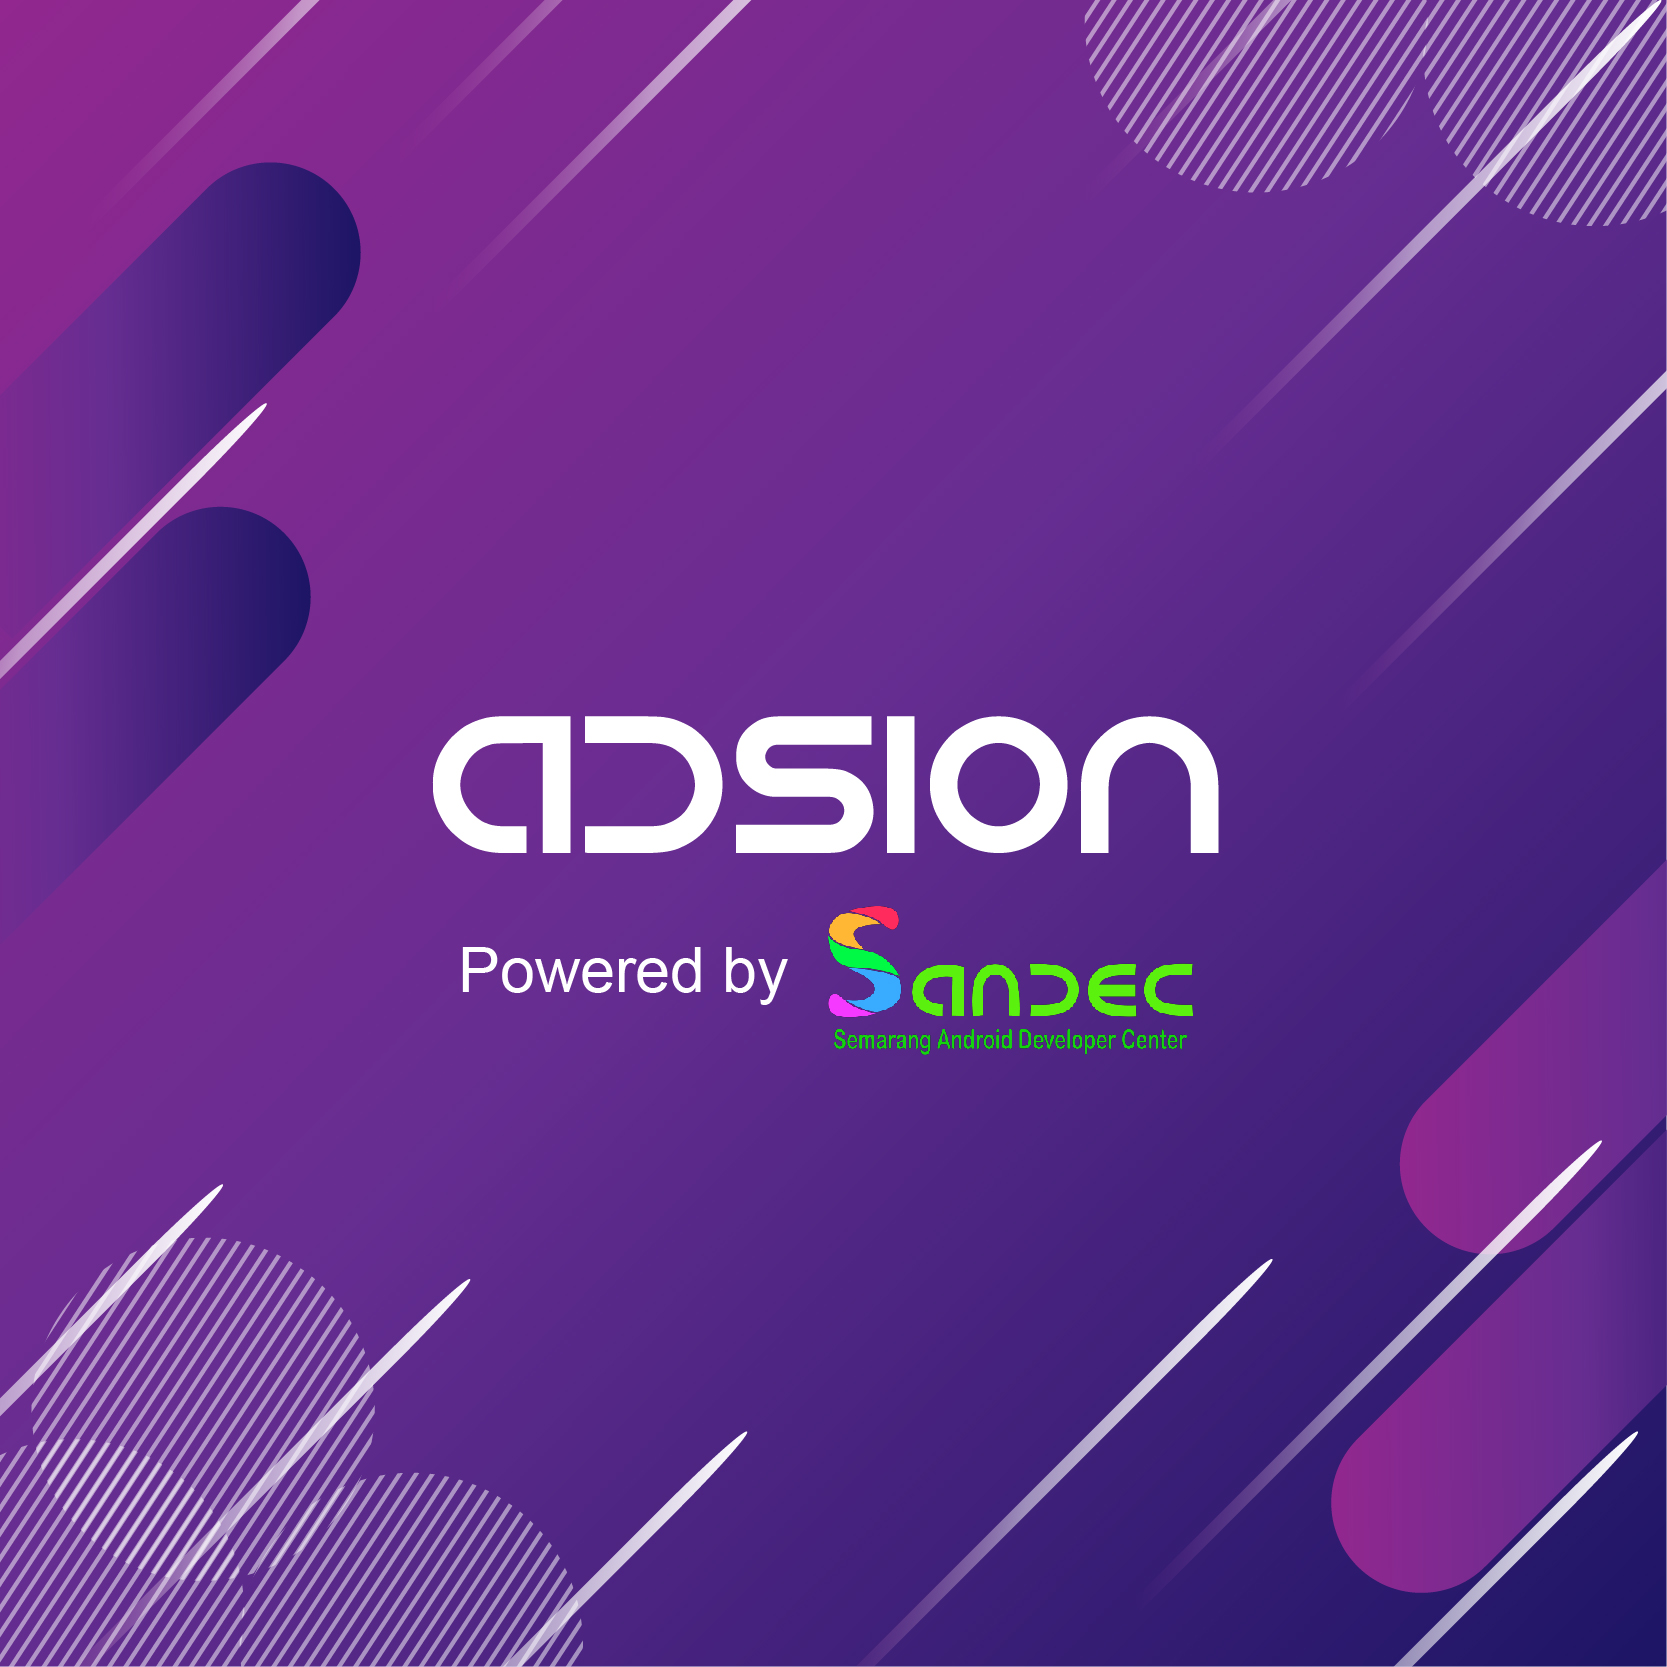 ADSION (Android Developer Sharing and Action) Workshop Class Flutter